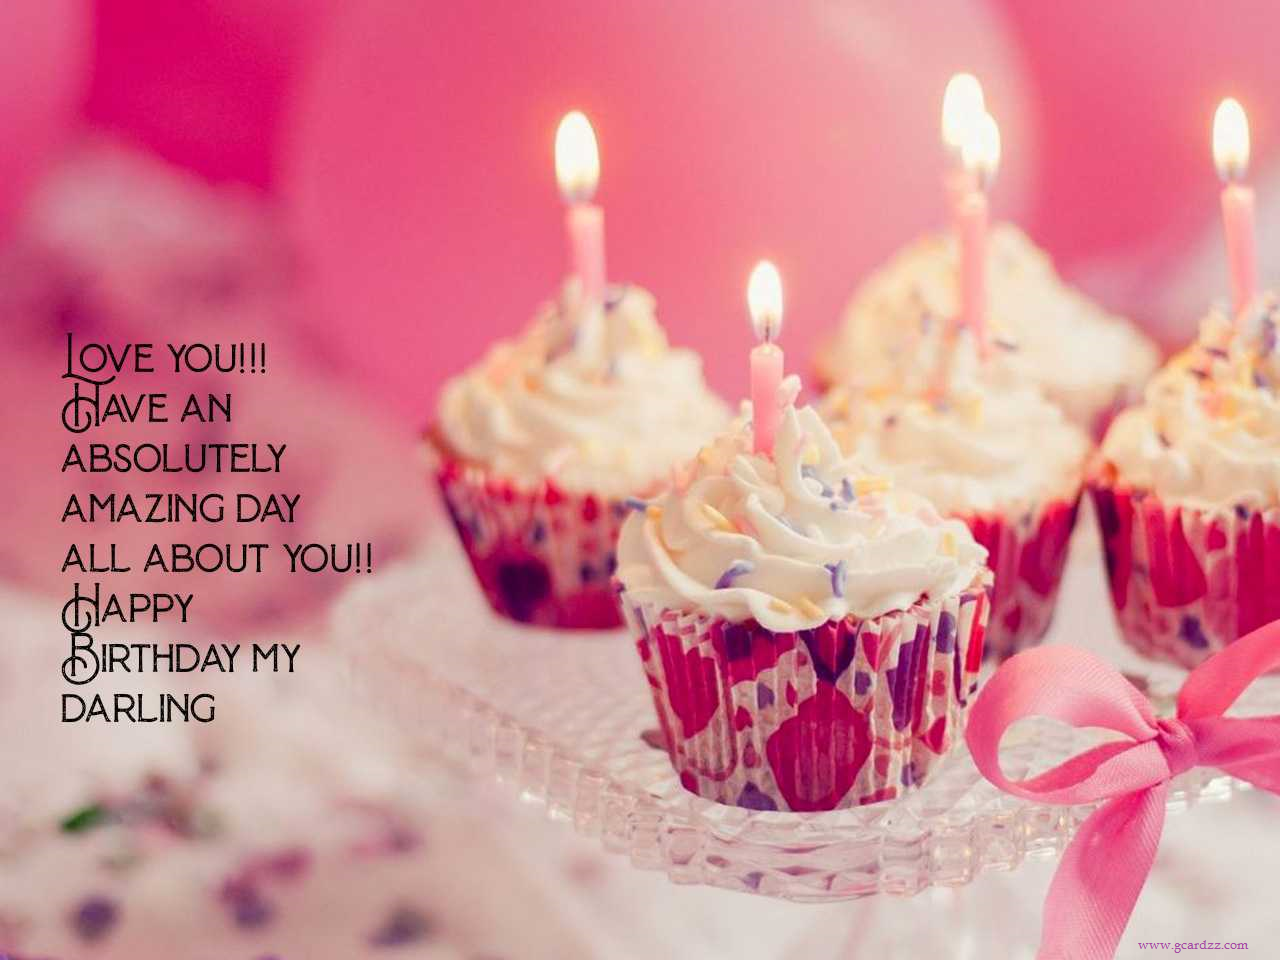 Beautiful Birthday Greeting Cards For Wife Free Download Birthday Greeting Cards Birthday Wishes For Wife Romantic Birthday Wishes